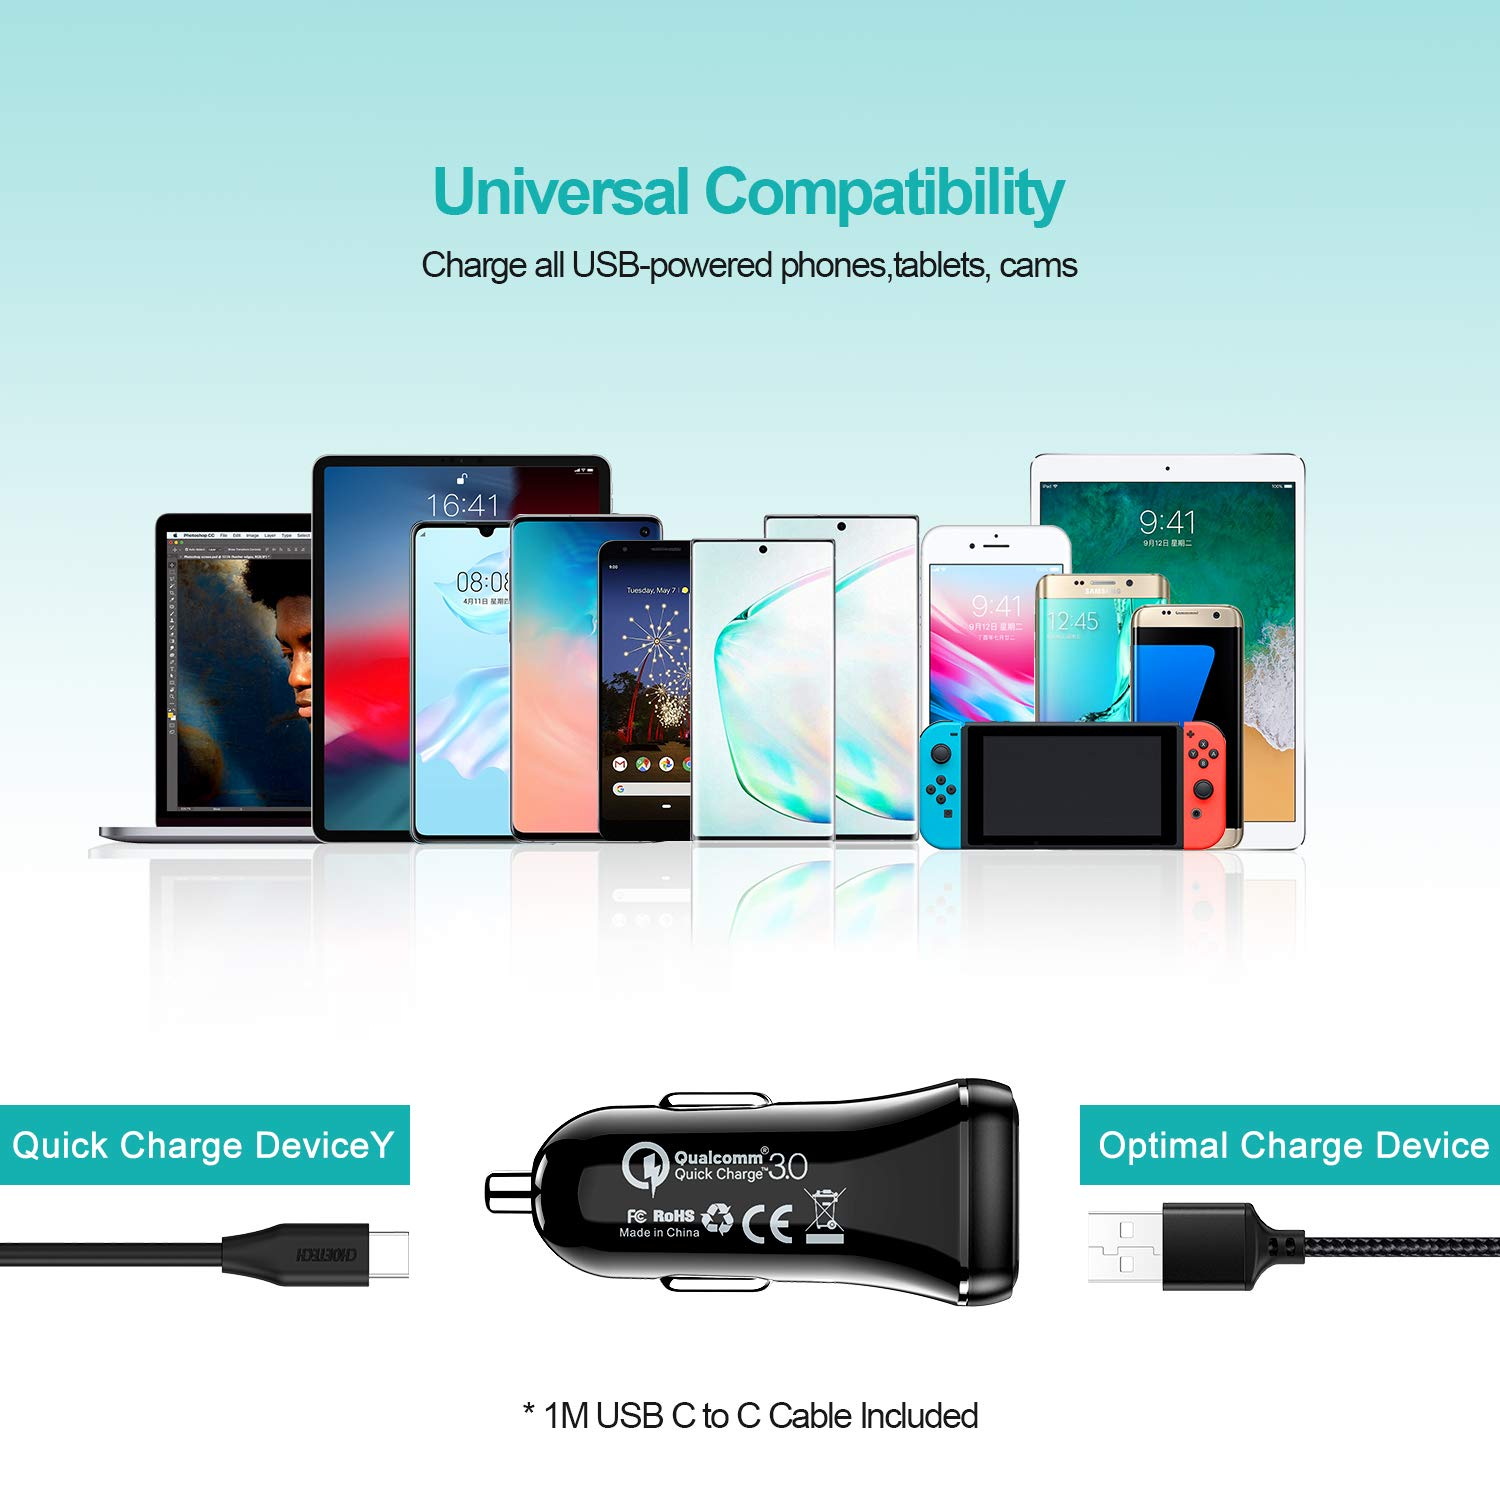 CHOETECH USB C Charger Samsung Galaxy Note 10+//Note 10,iPad Pro 36W USB Type C Charger with 18W Power Delivery /& 18W Quick Charge 3.0 Compatible iPhone SE//11//11 Pro Max//X//XS Google Pixel 3 //3XL